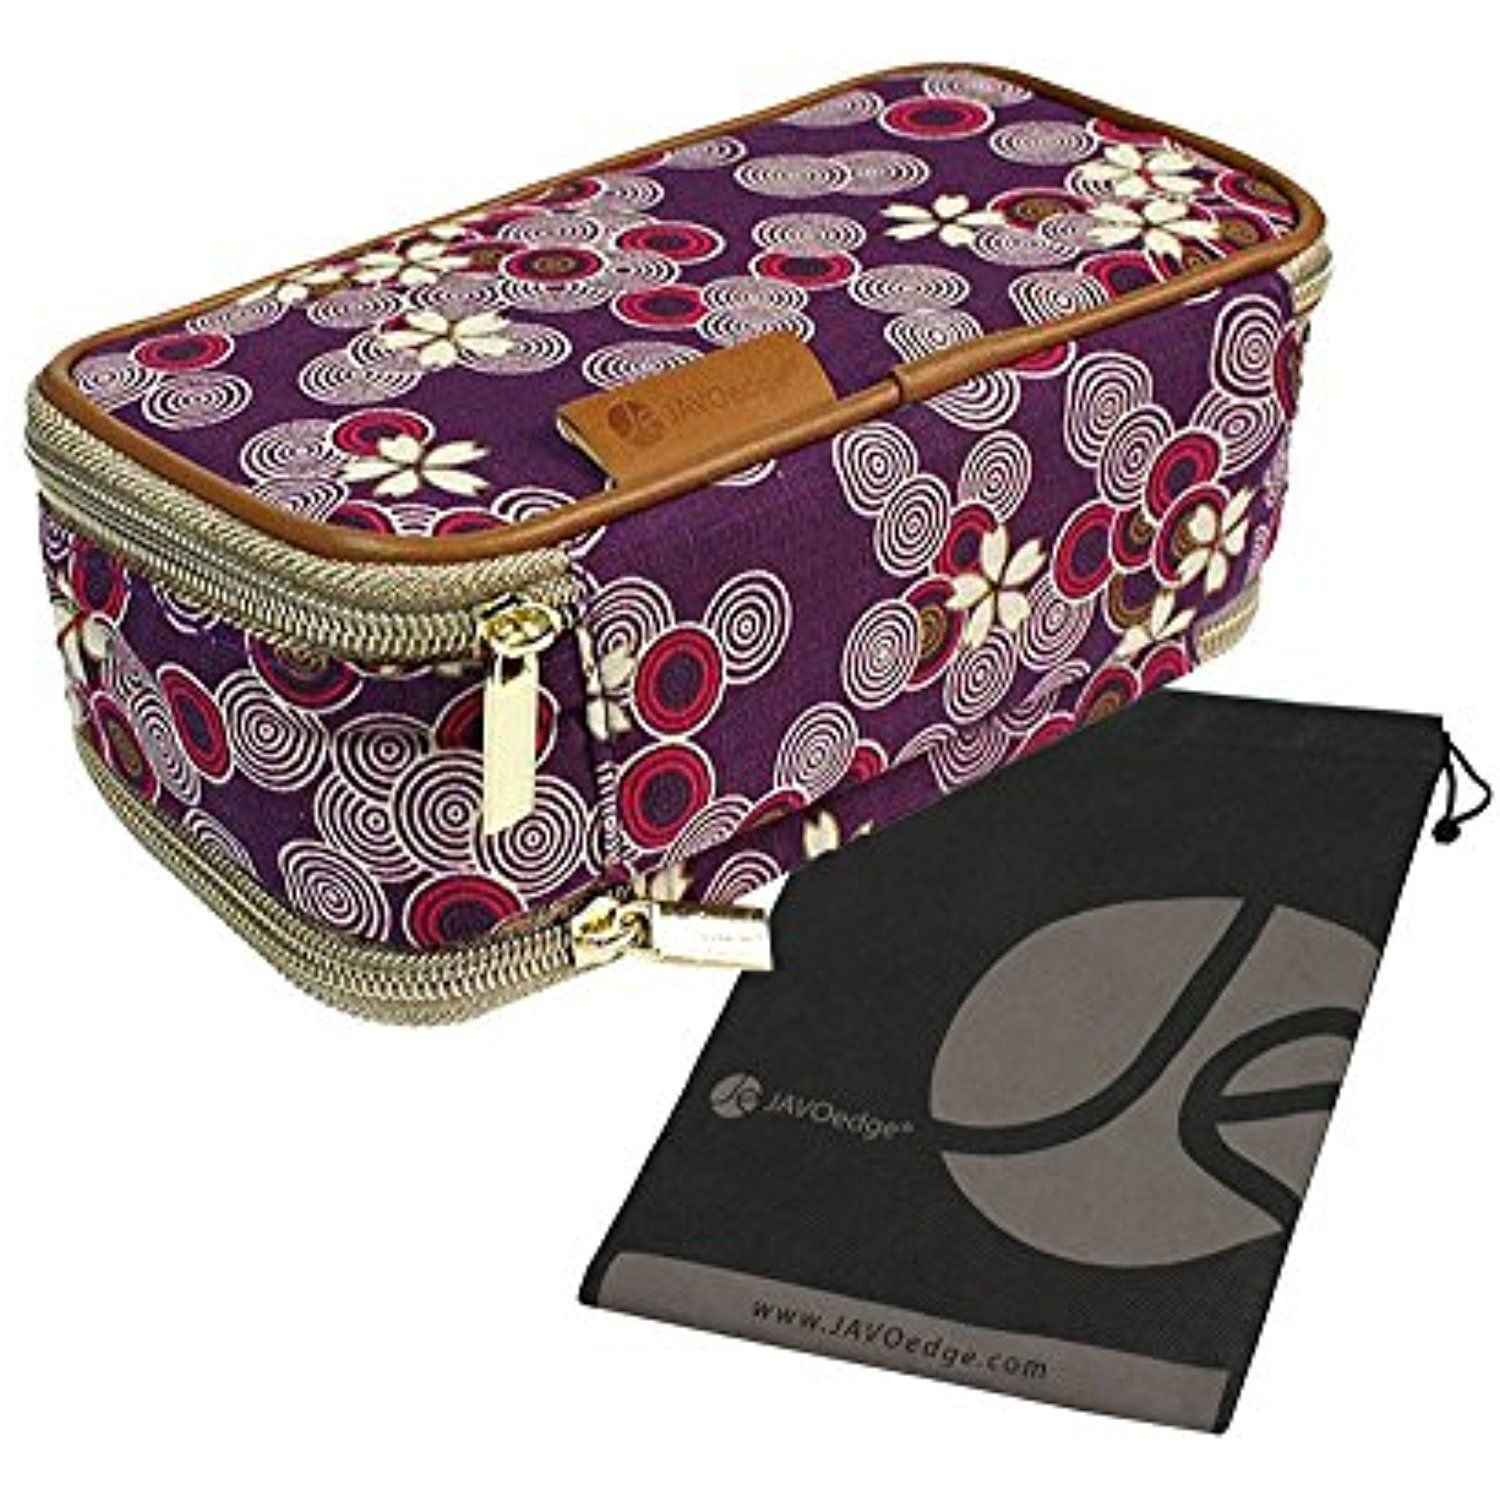 DoubleSided Cosmetic Fabric Toiletry and Jewelry Bag